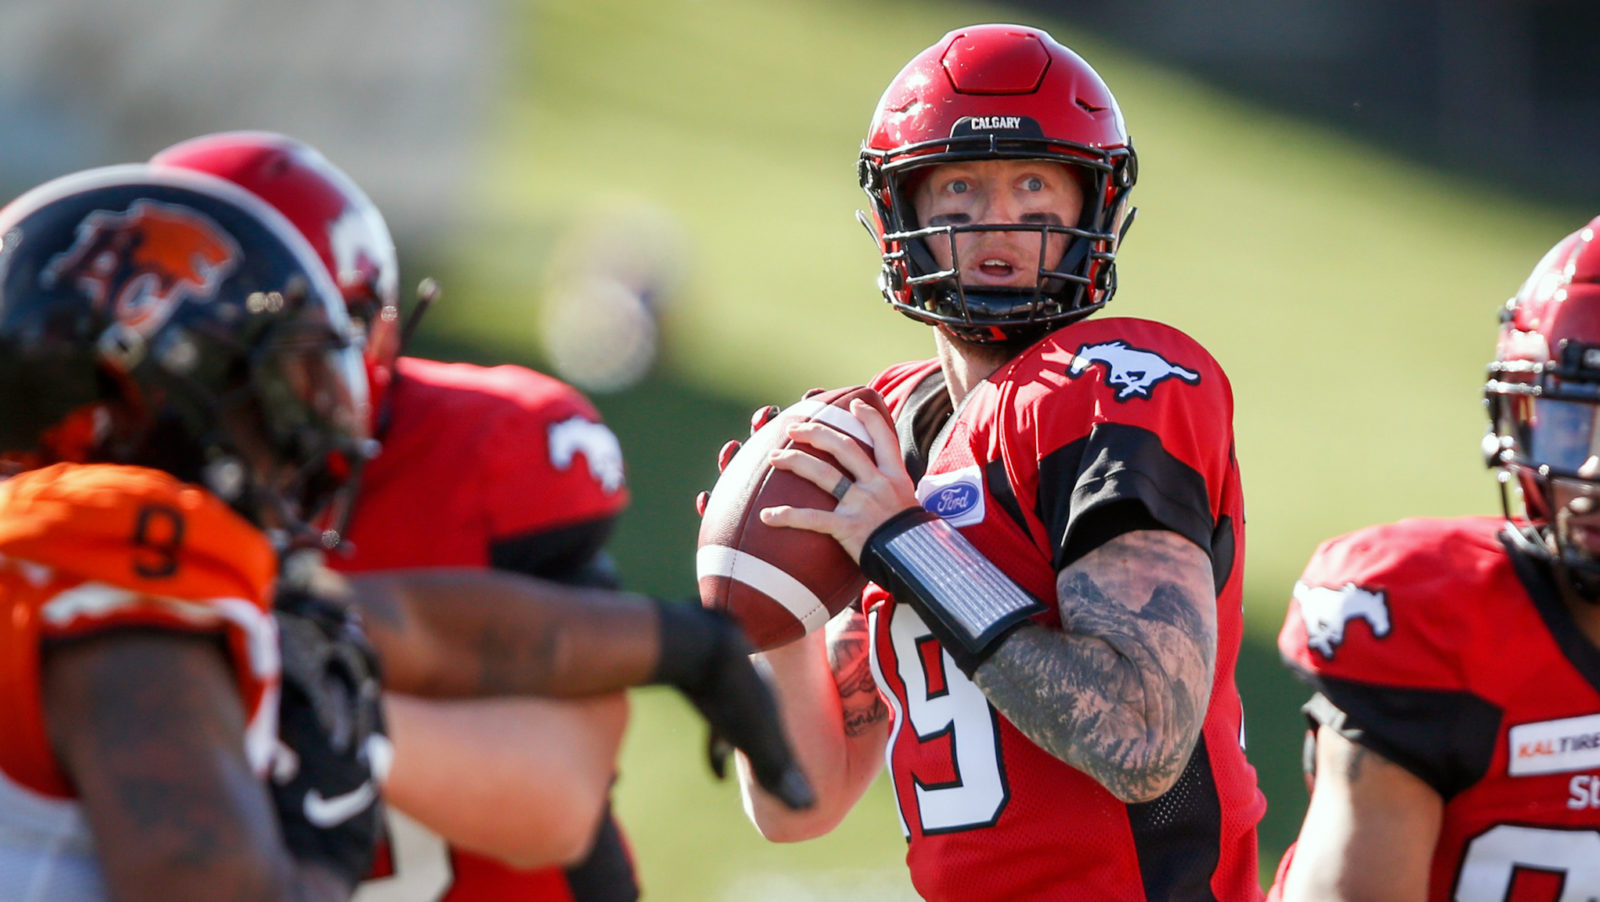 Calgary Stampeders: The team for you?